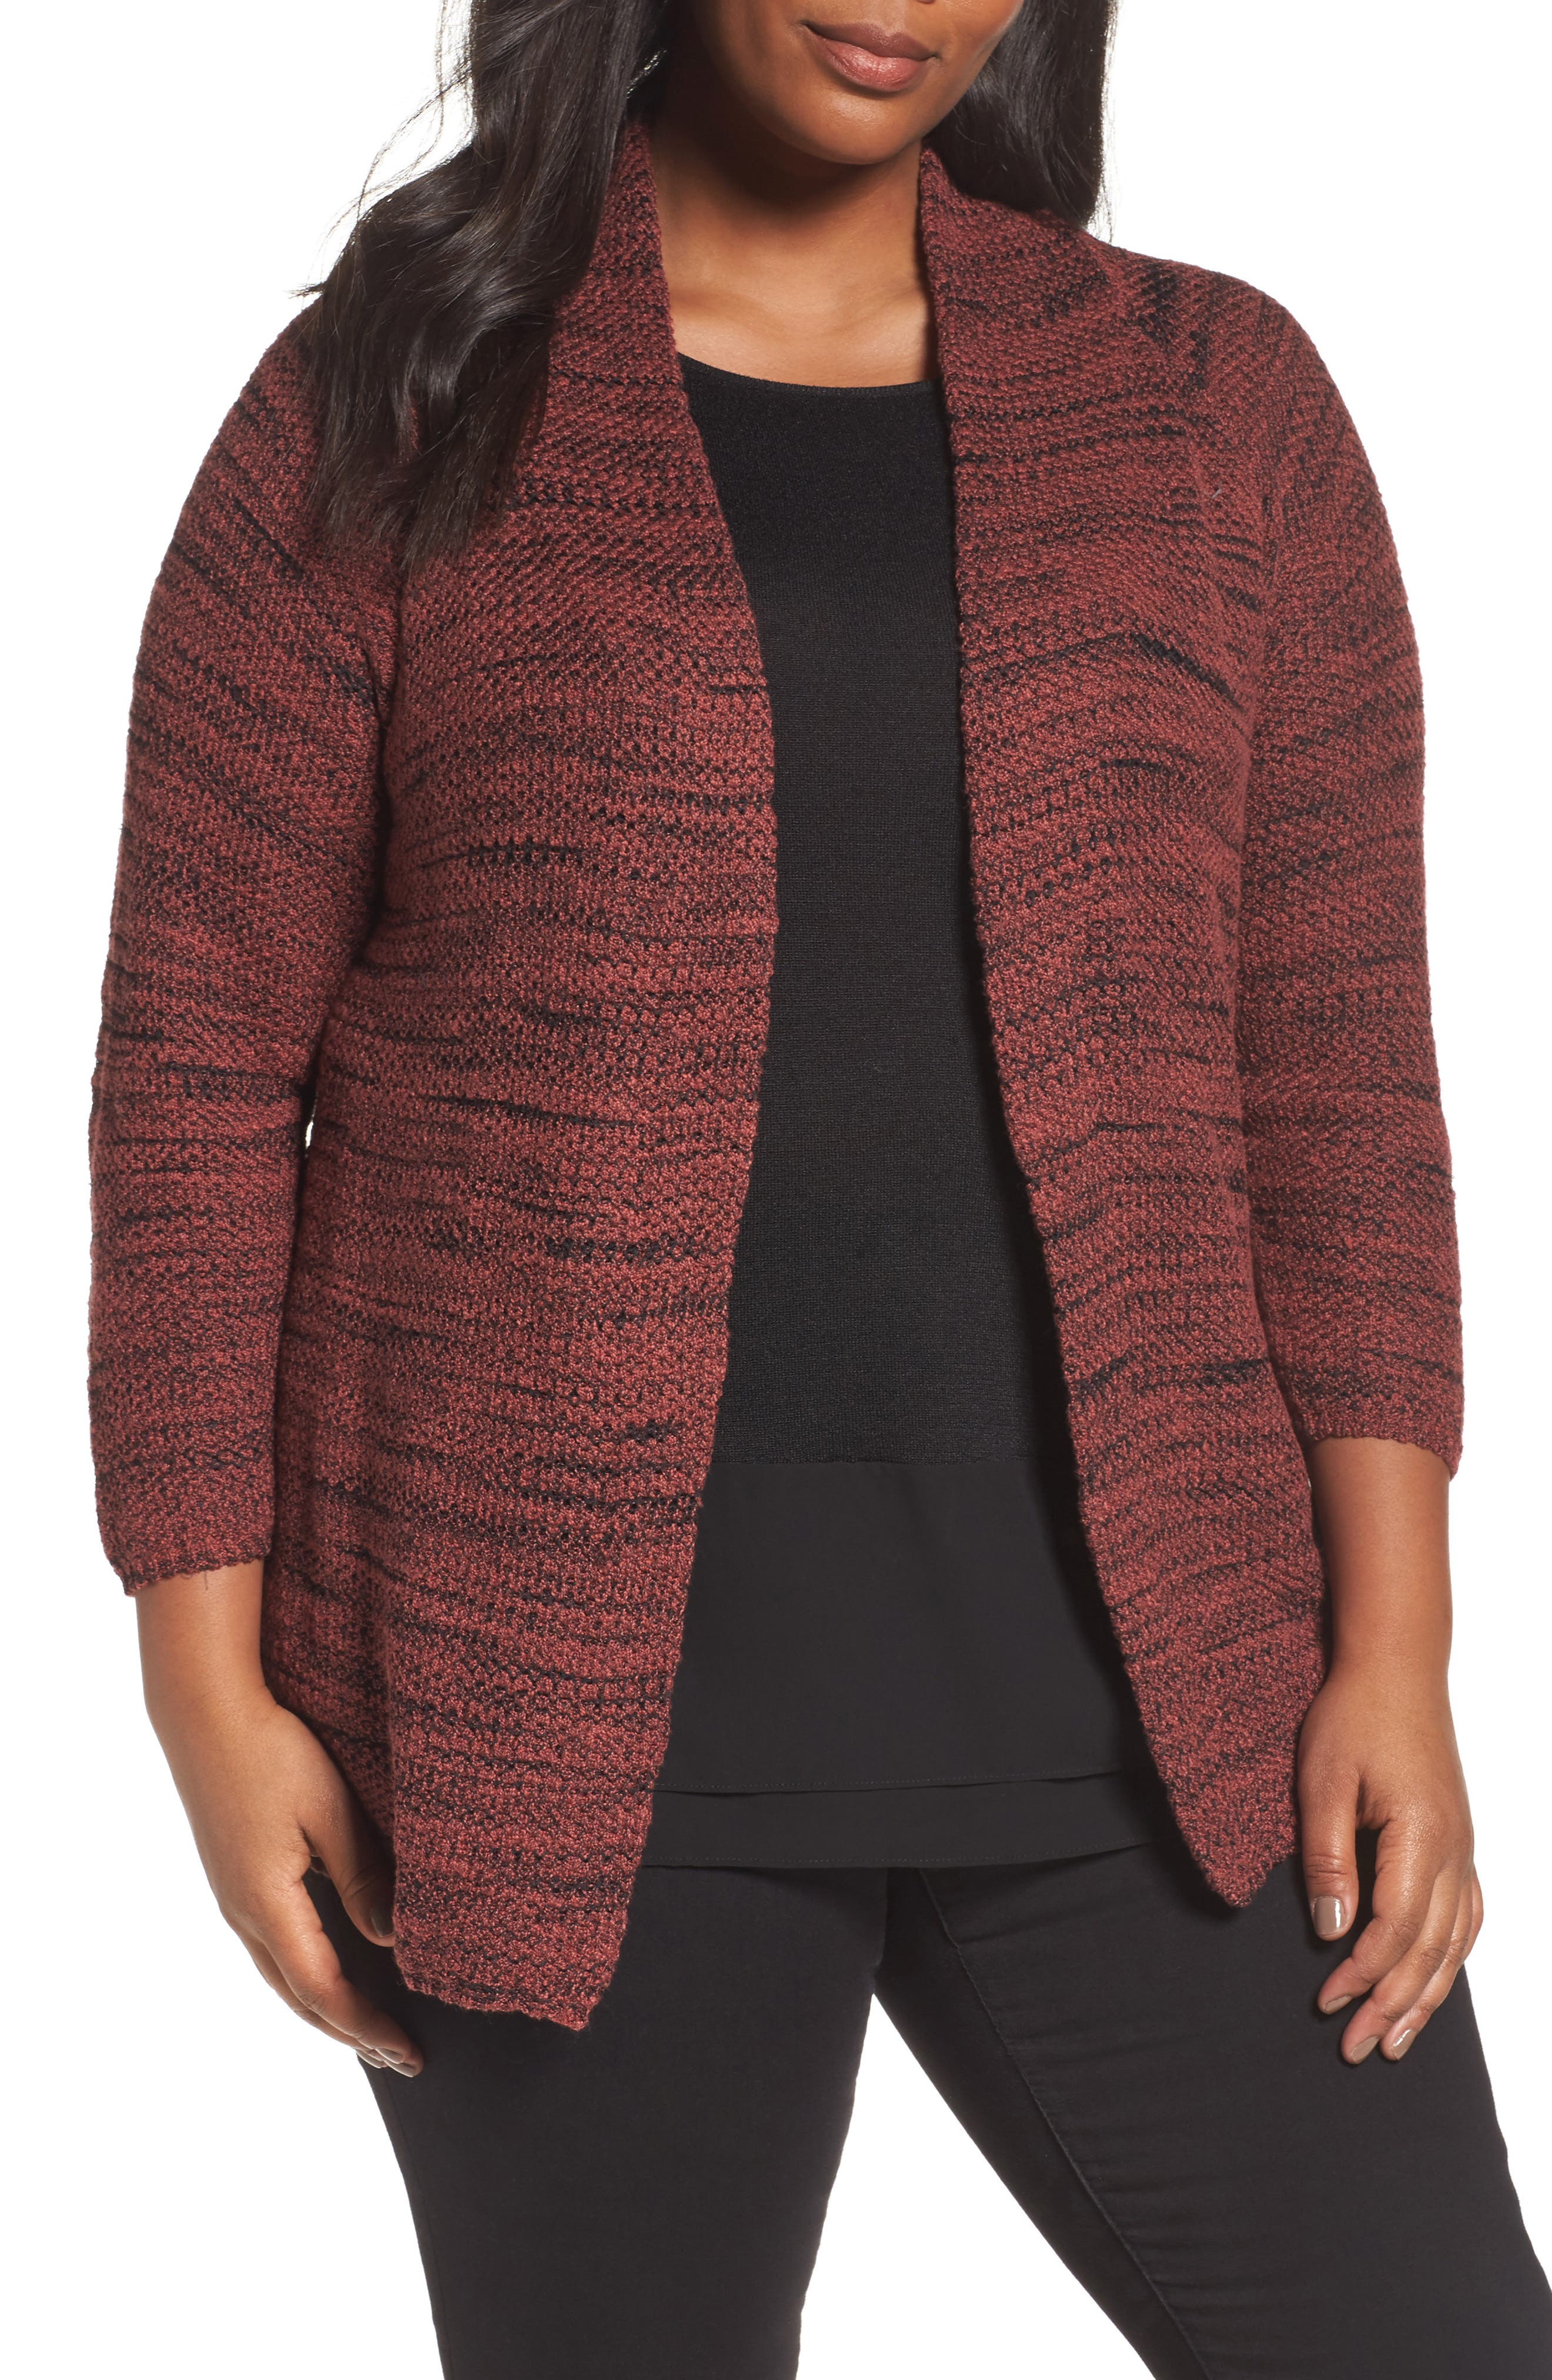 Alternate Image 1 Selected - NIC+ZOE Thick & Thin Cardigan (Plus Size)